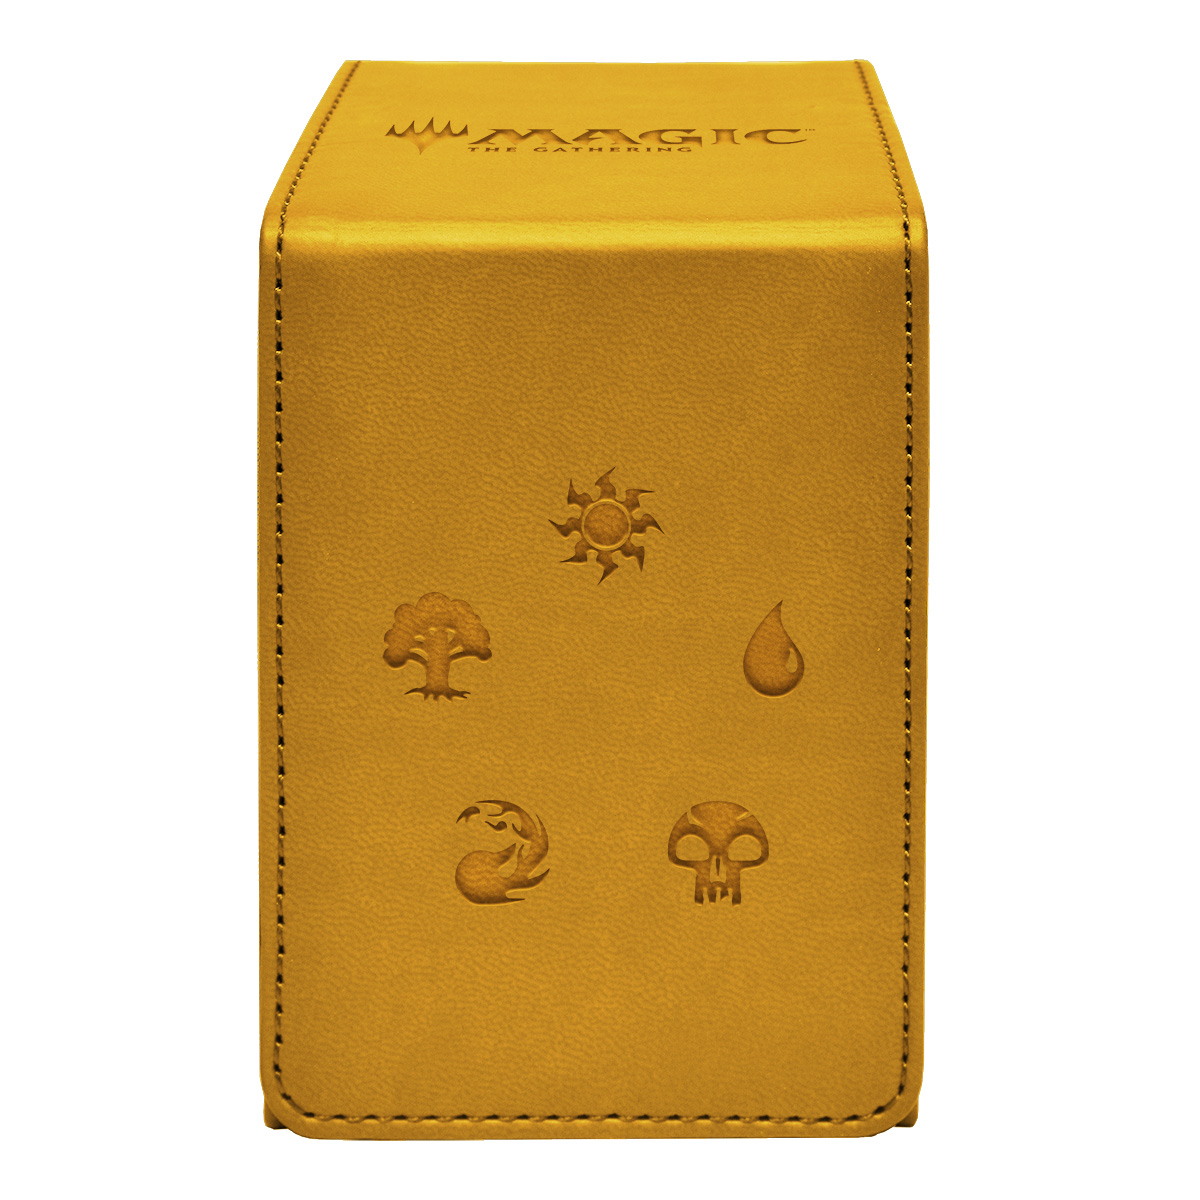 Buy Ultra Pro Magic Alcove Flip Box - Gold Mana Symbols